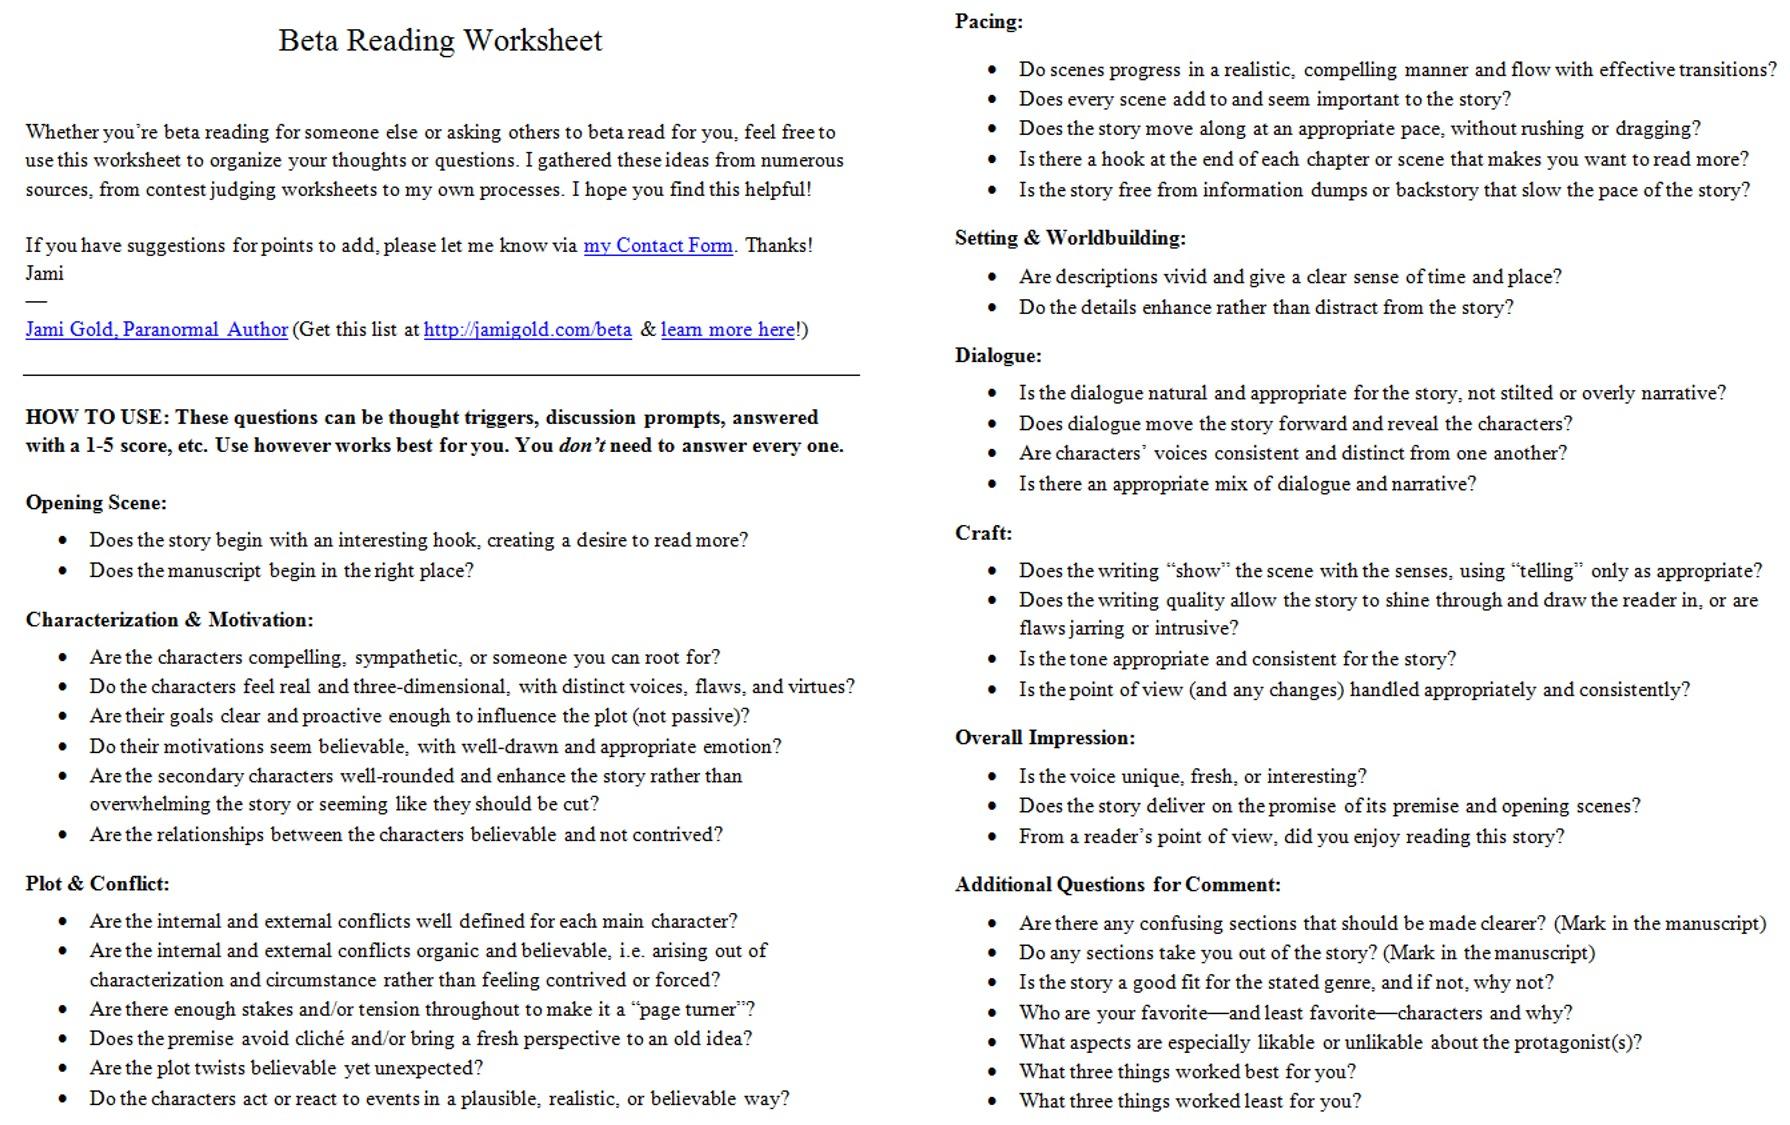 Proatmealus  Nice Worksheets For Writers  Jami Gold Paranormal Author With Foxy Screen Shot Of The Twopage Beta Reading Worksheet With Charming Context Clues Worksheet Grade  Also Maths Year  Worksheets In Addition Additon And Subtraction Worksheets And Possessive Pronouns Esl Worksheet As Well As Exclamation Worksheets Additionally Physical Appearance Worksheet From Jamigoldcom With Proatmealus  Foxy Worksheets For Writers  Jami Gold Paranormal Author With Charming Screen Shot Of The Twopage Beta Reading Worksheet And Nice Context Clues Worksheet Grade  Also Maths Year  Worksheets In Addition Additon And Subtraction Worksheets From Jamigoldcom